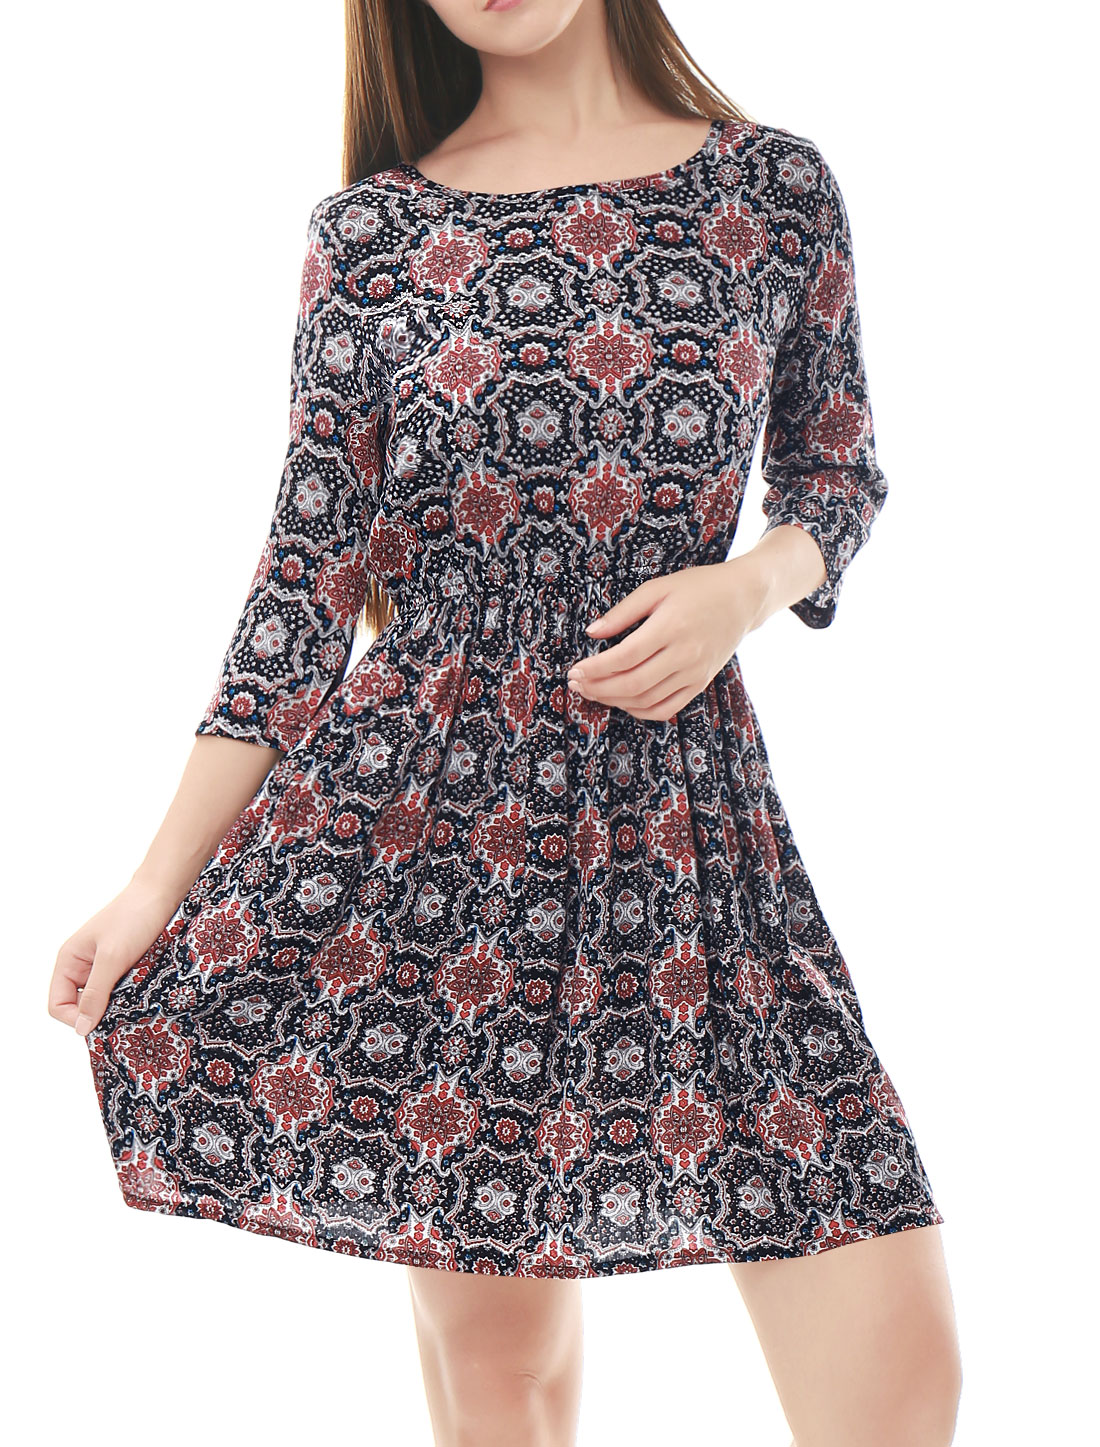 Allegra K Woman Floral Prints 3/4 Sleeves Elastic Waist A Line Dress Black XL